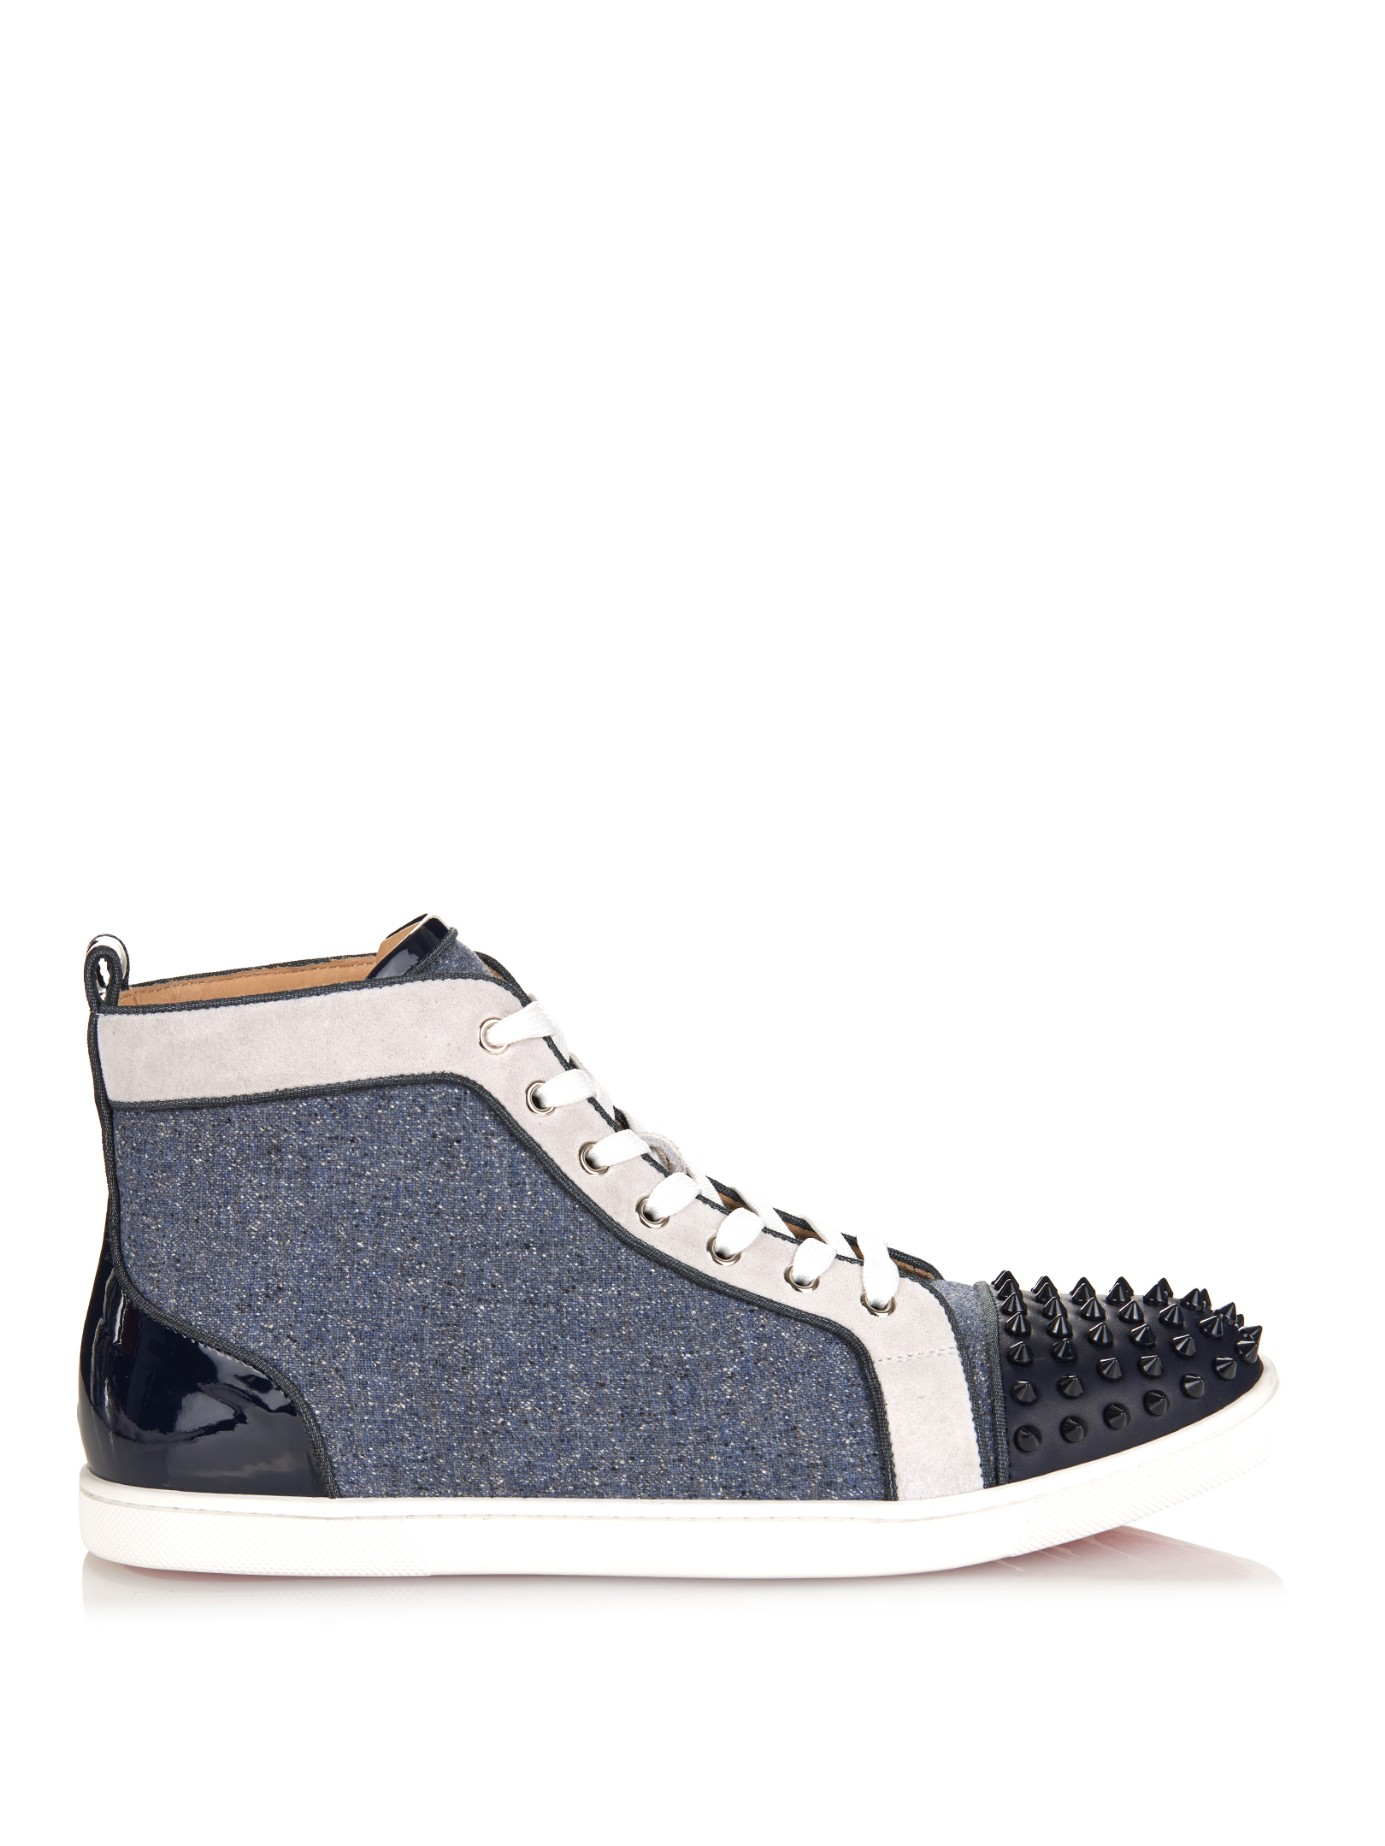 Christian Louboutin Spike Suede High Top Sneakers Louis Vuitton